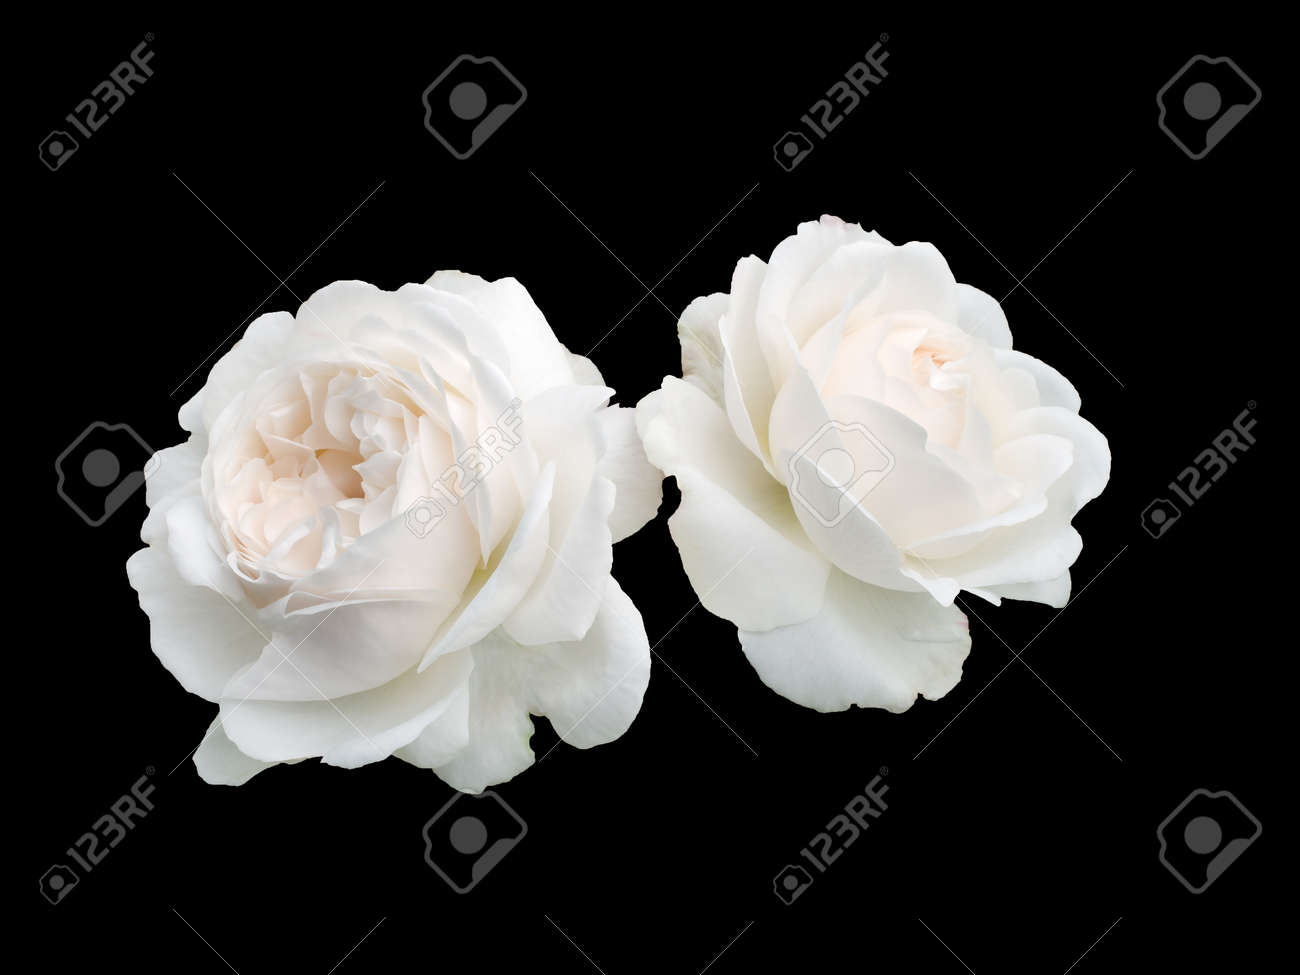 44a261fb4 Two White Roses Isolated On A Black Background Stock Photo, Picture ...